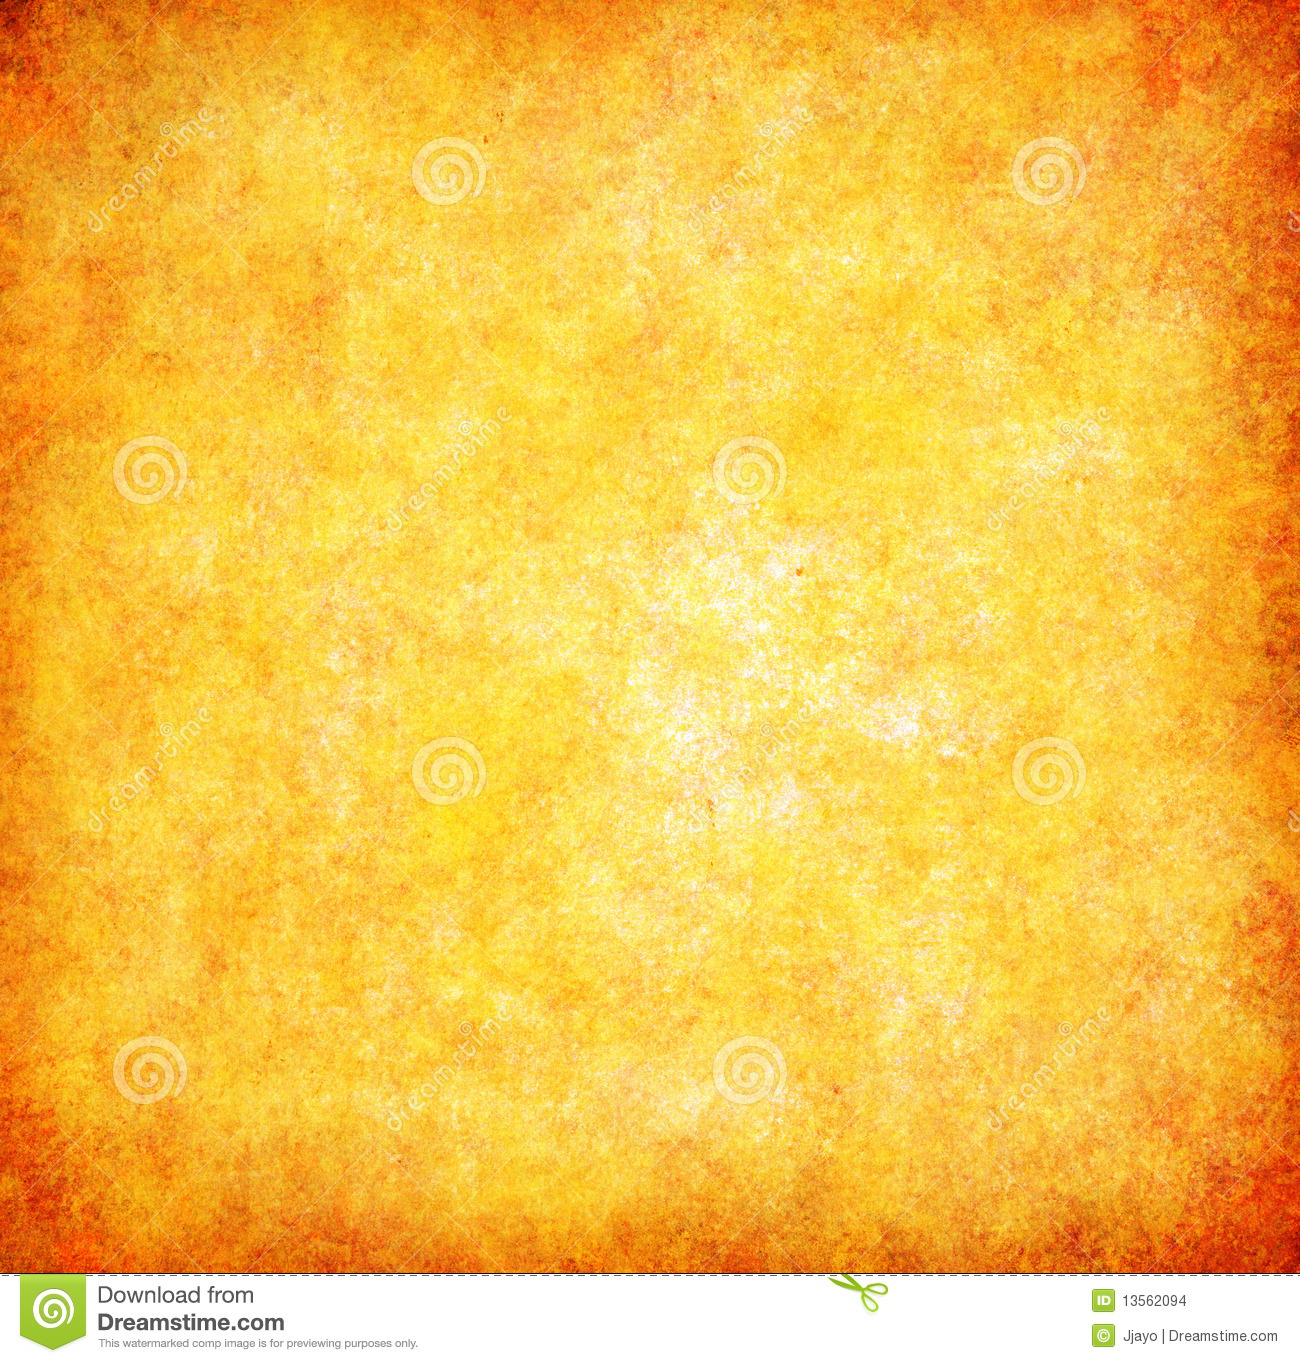 yellow grunge textured abstract background 13562094